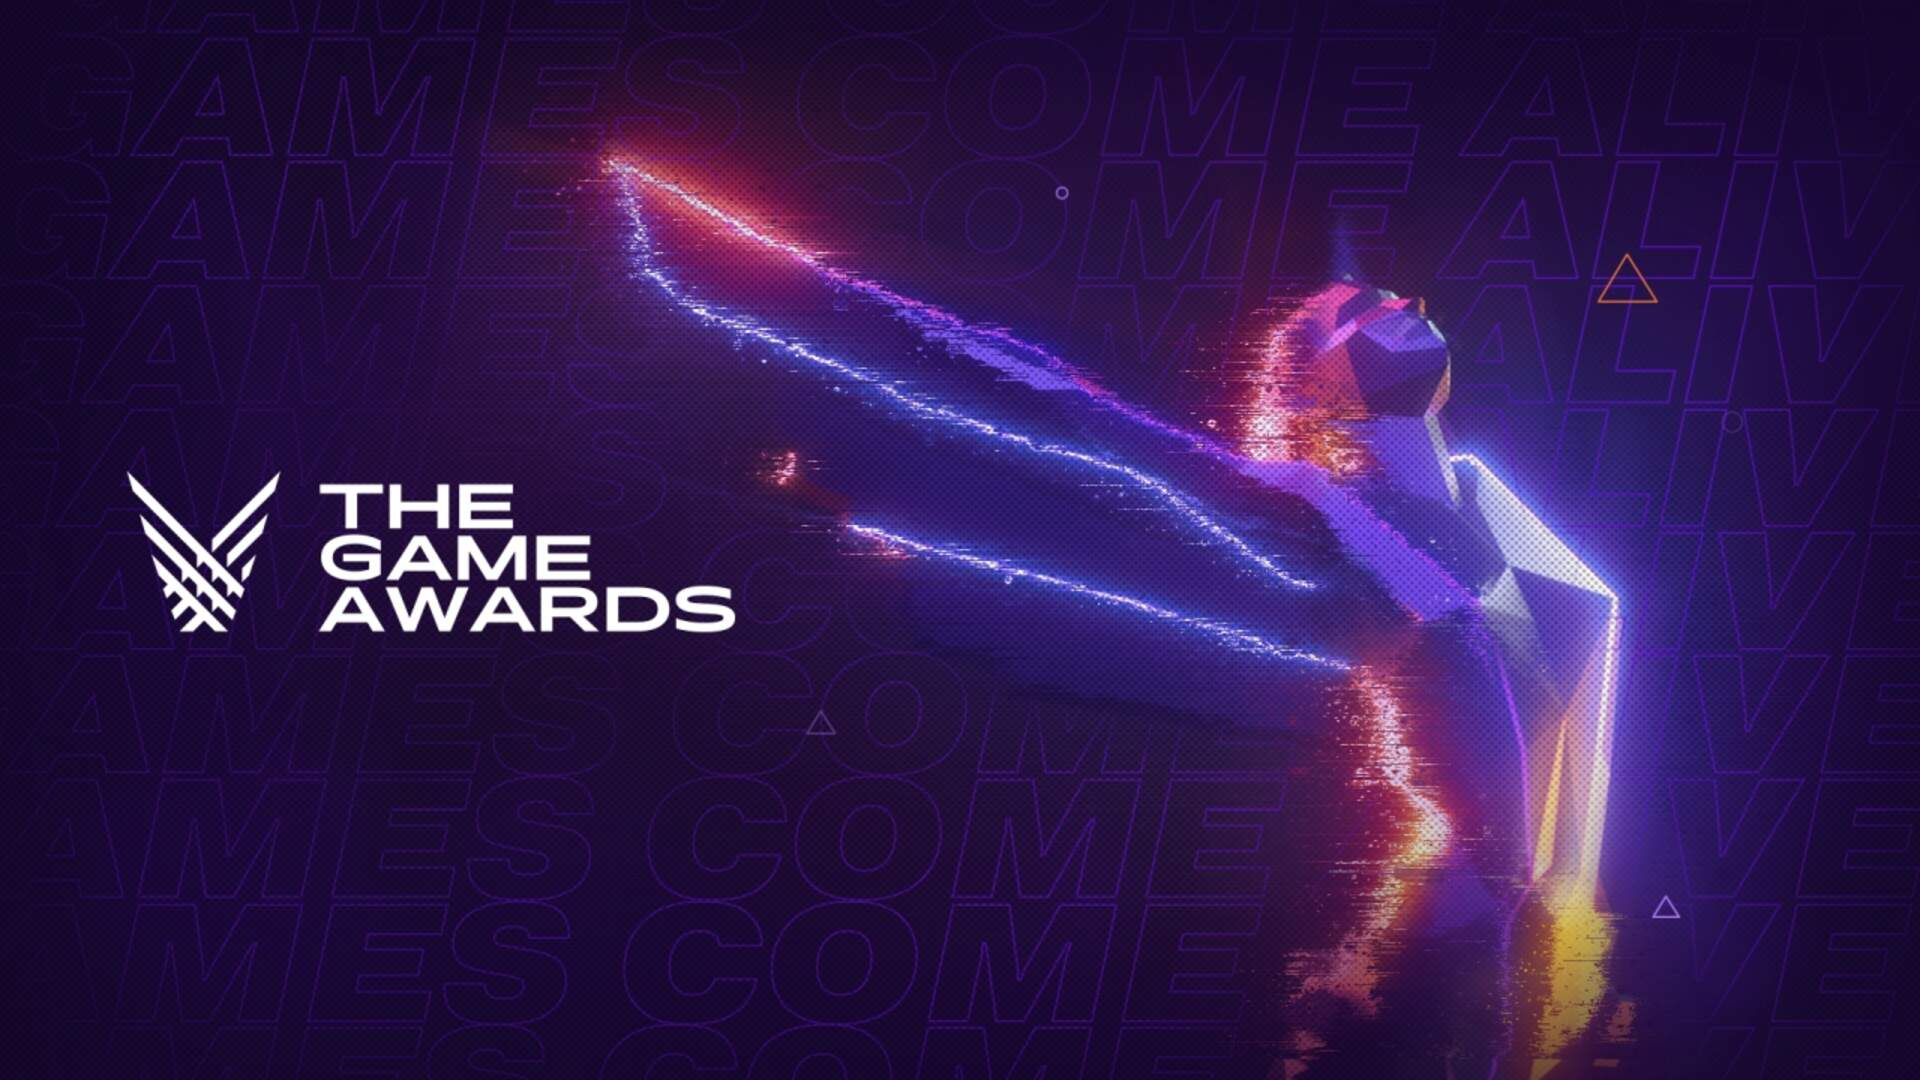 The Game Awards Will Host Its 2020 Show From Three Remote Locations